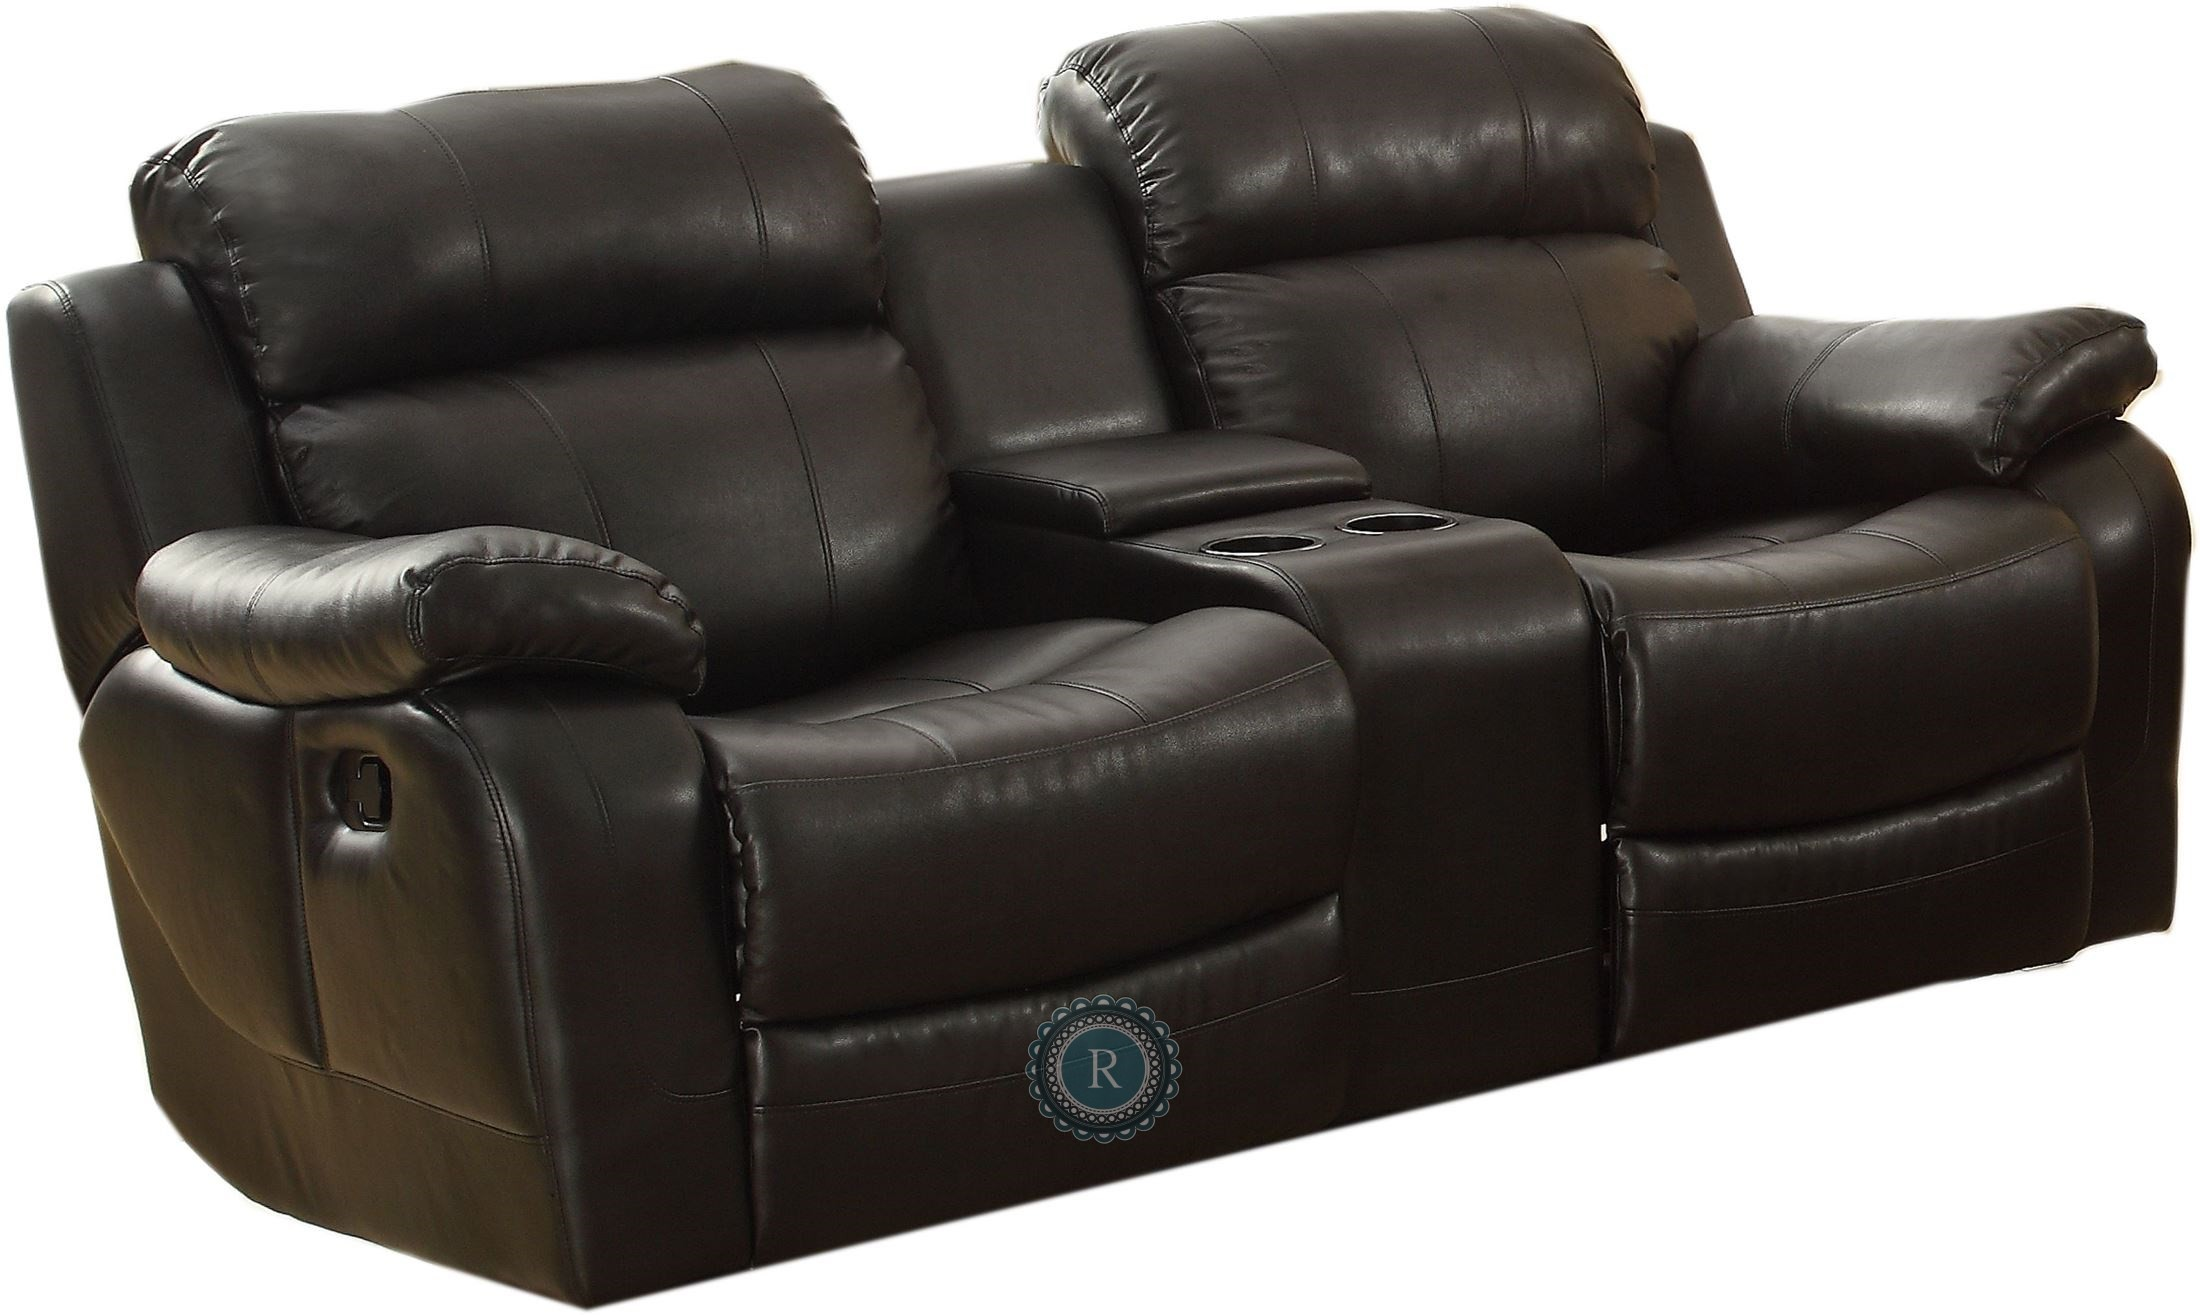 Marille black double glider reclining loveseat with center console 9724blk 2 homelegance Reclining loveseat with center console